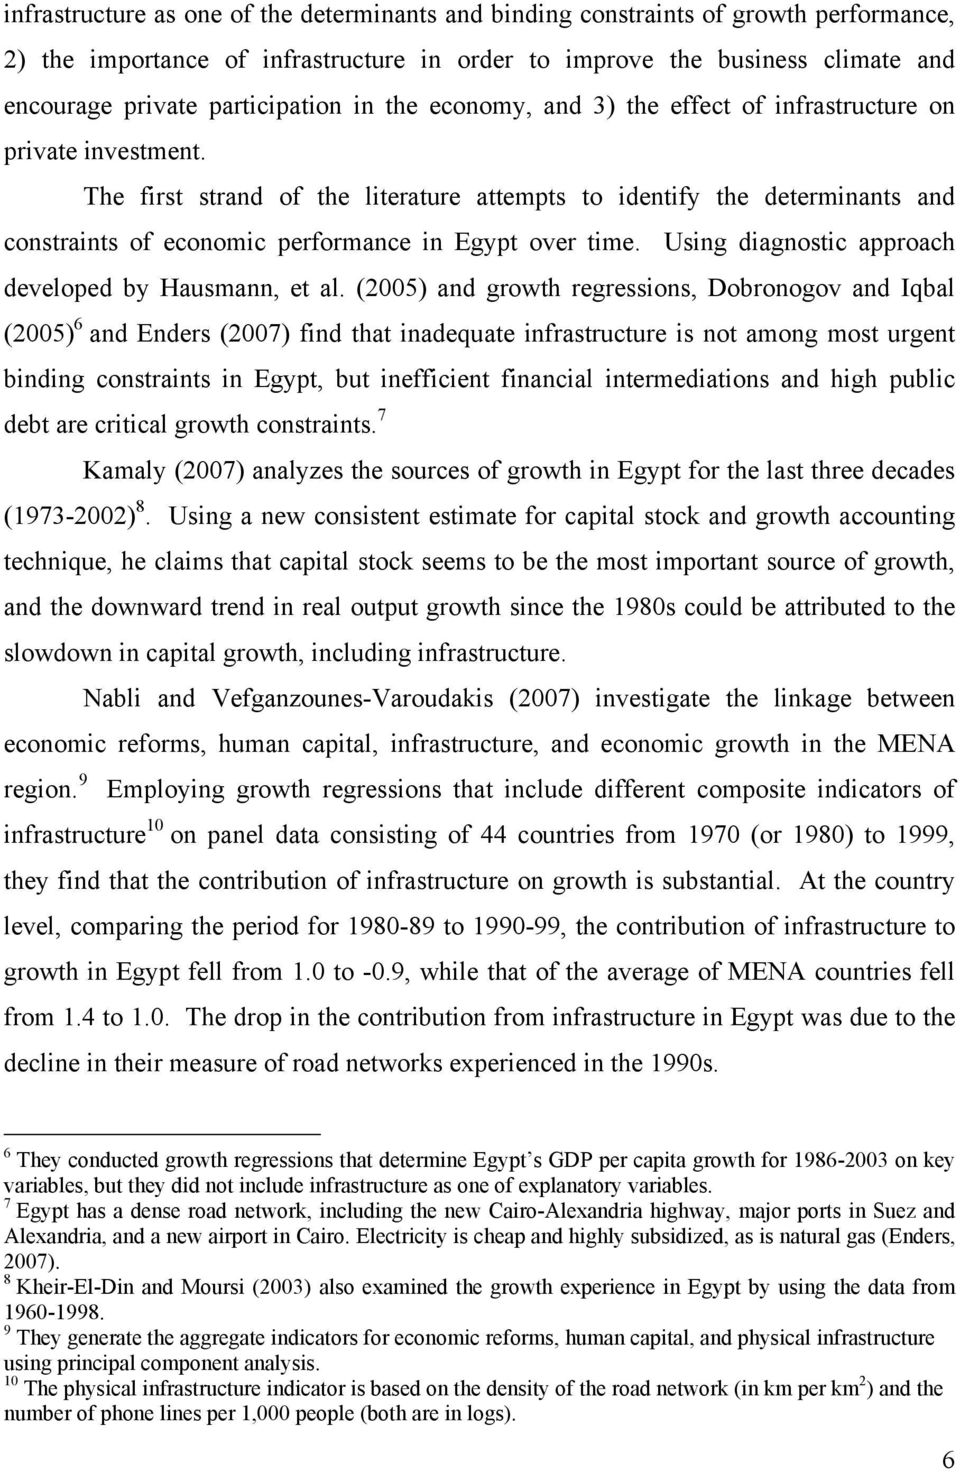 The first strand of the literature attempts to identify the determinants and constraints of economic performance in Egypt over time. Using diagnostic approach developed by Hausmann, et al.